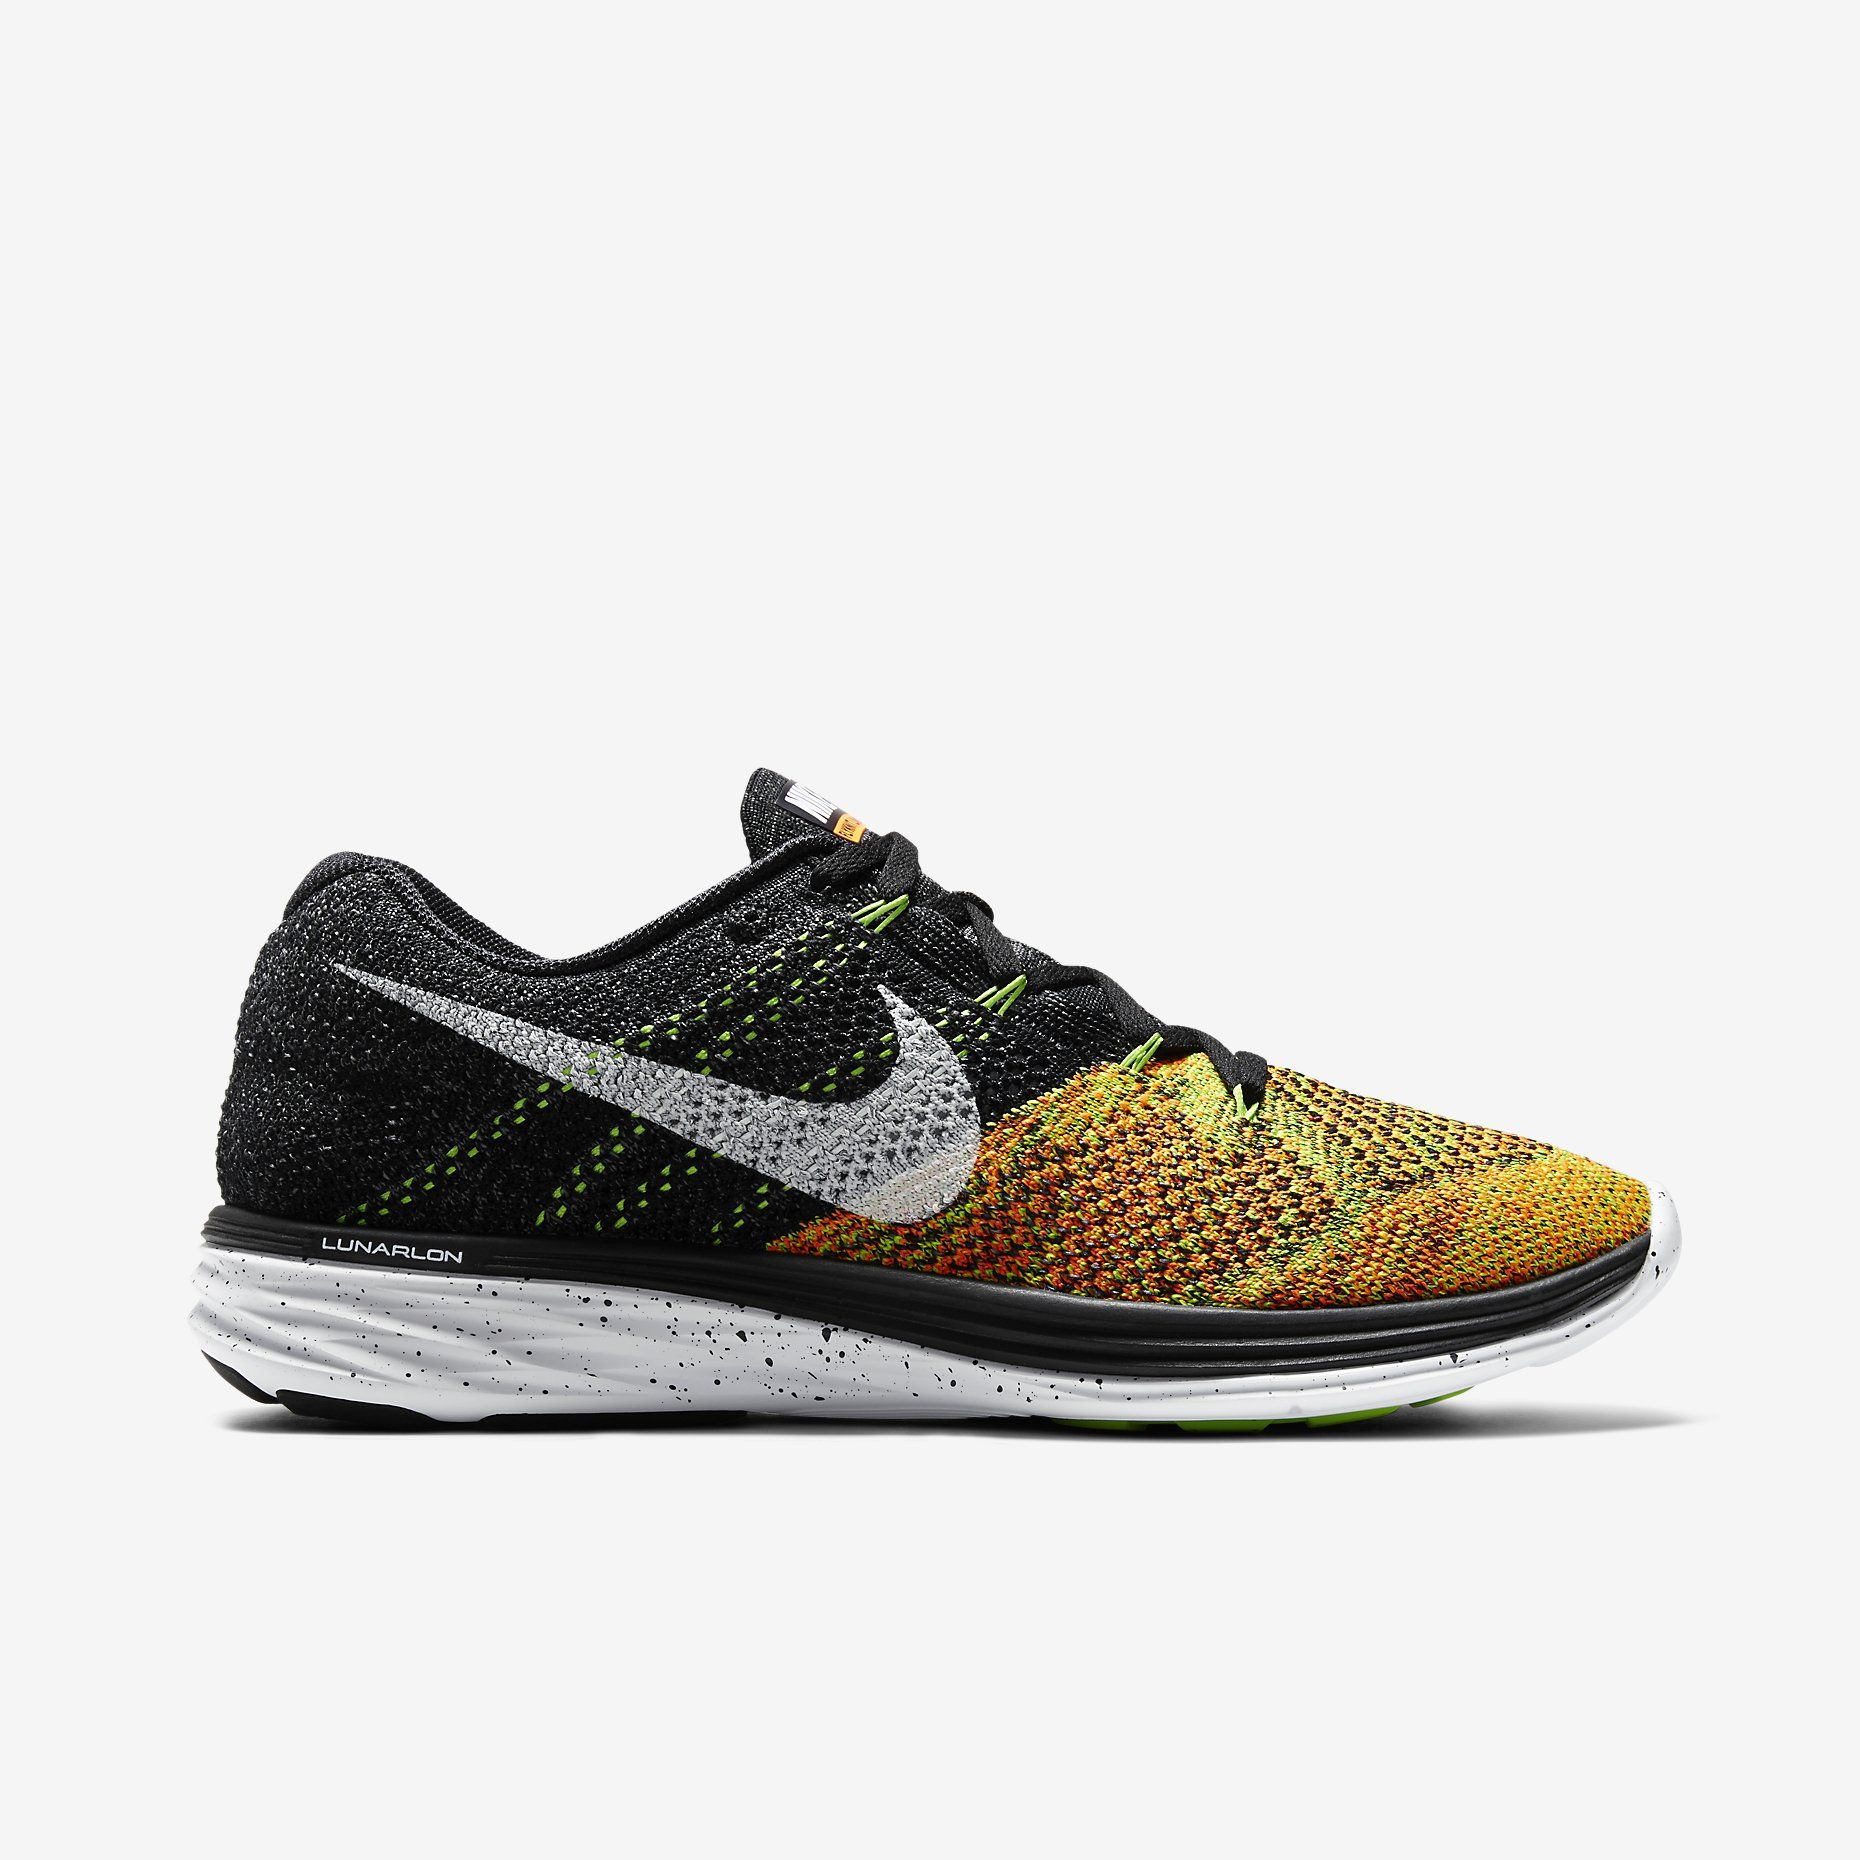 Supervivencia pompa ballet  Nike Flyknit Lunar 3 | Nike free shoes, Adidas shoes outlet, Running shoes  nike